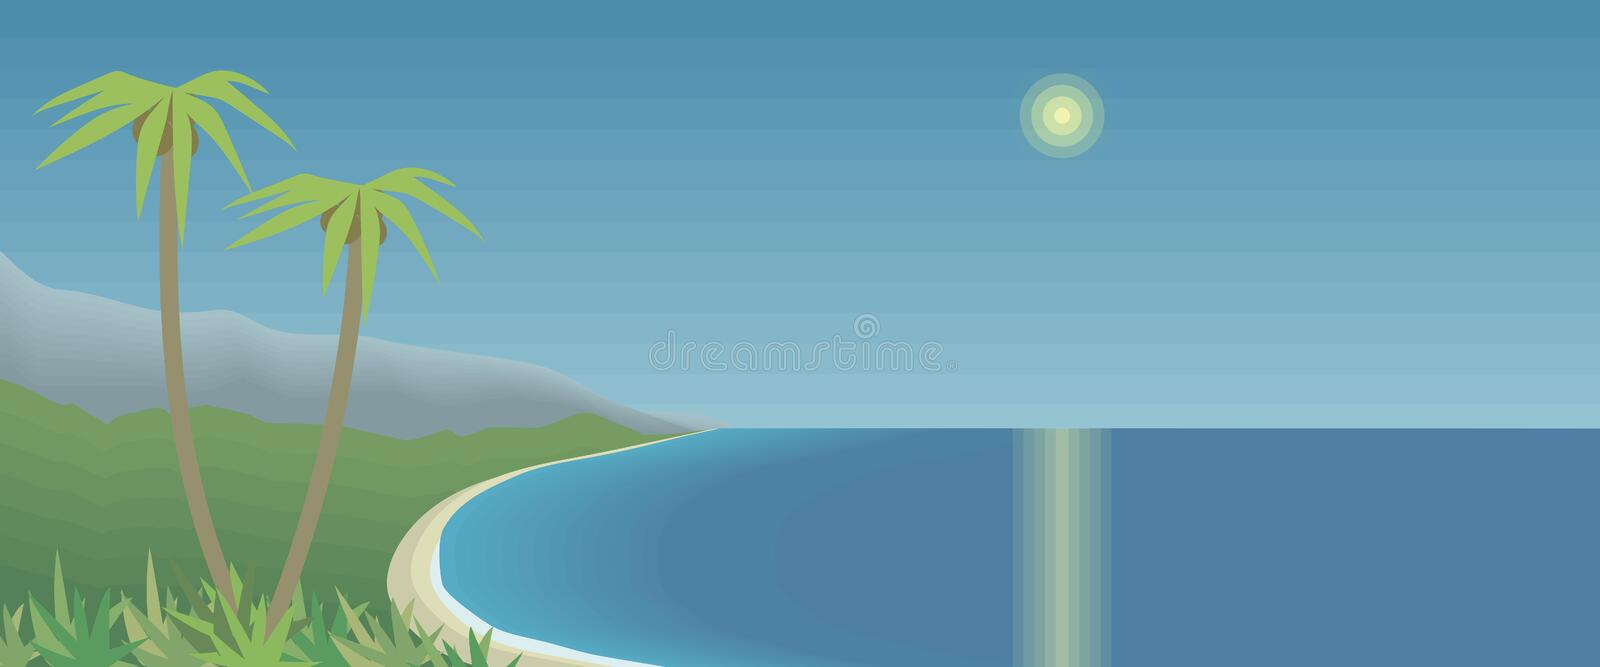 Tropical bay with palm trees and mountains azure sea sky sun glare sunny path reflection horizontal postcard drawing vector illust vector illustration